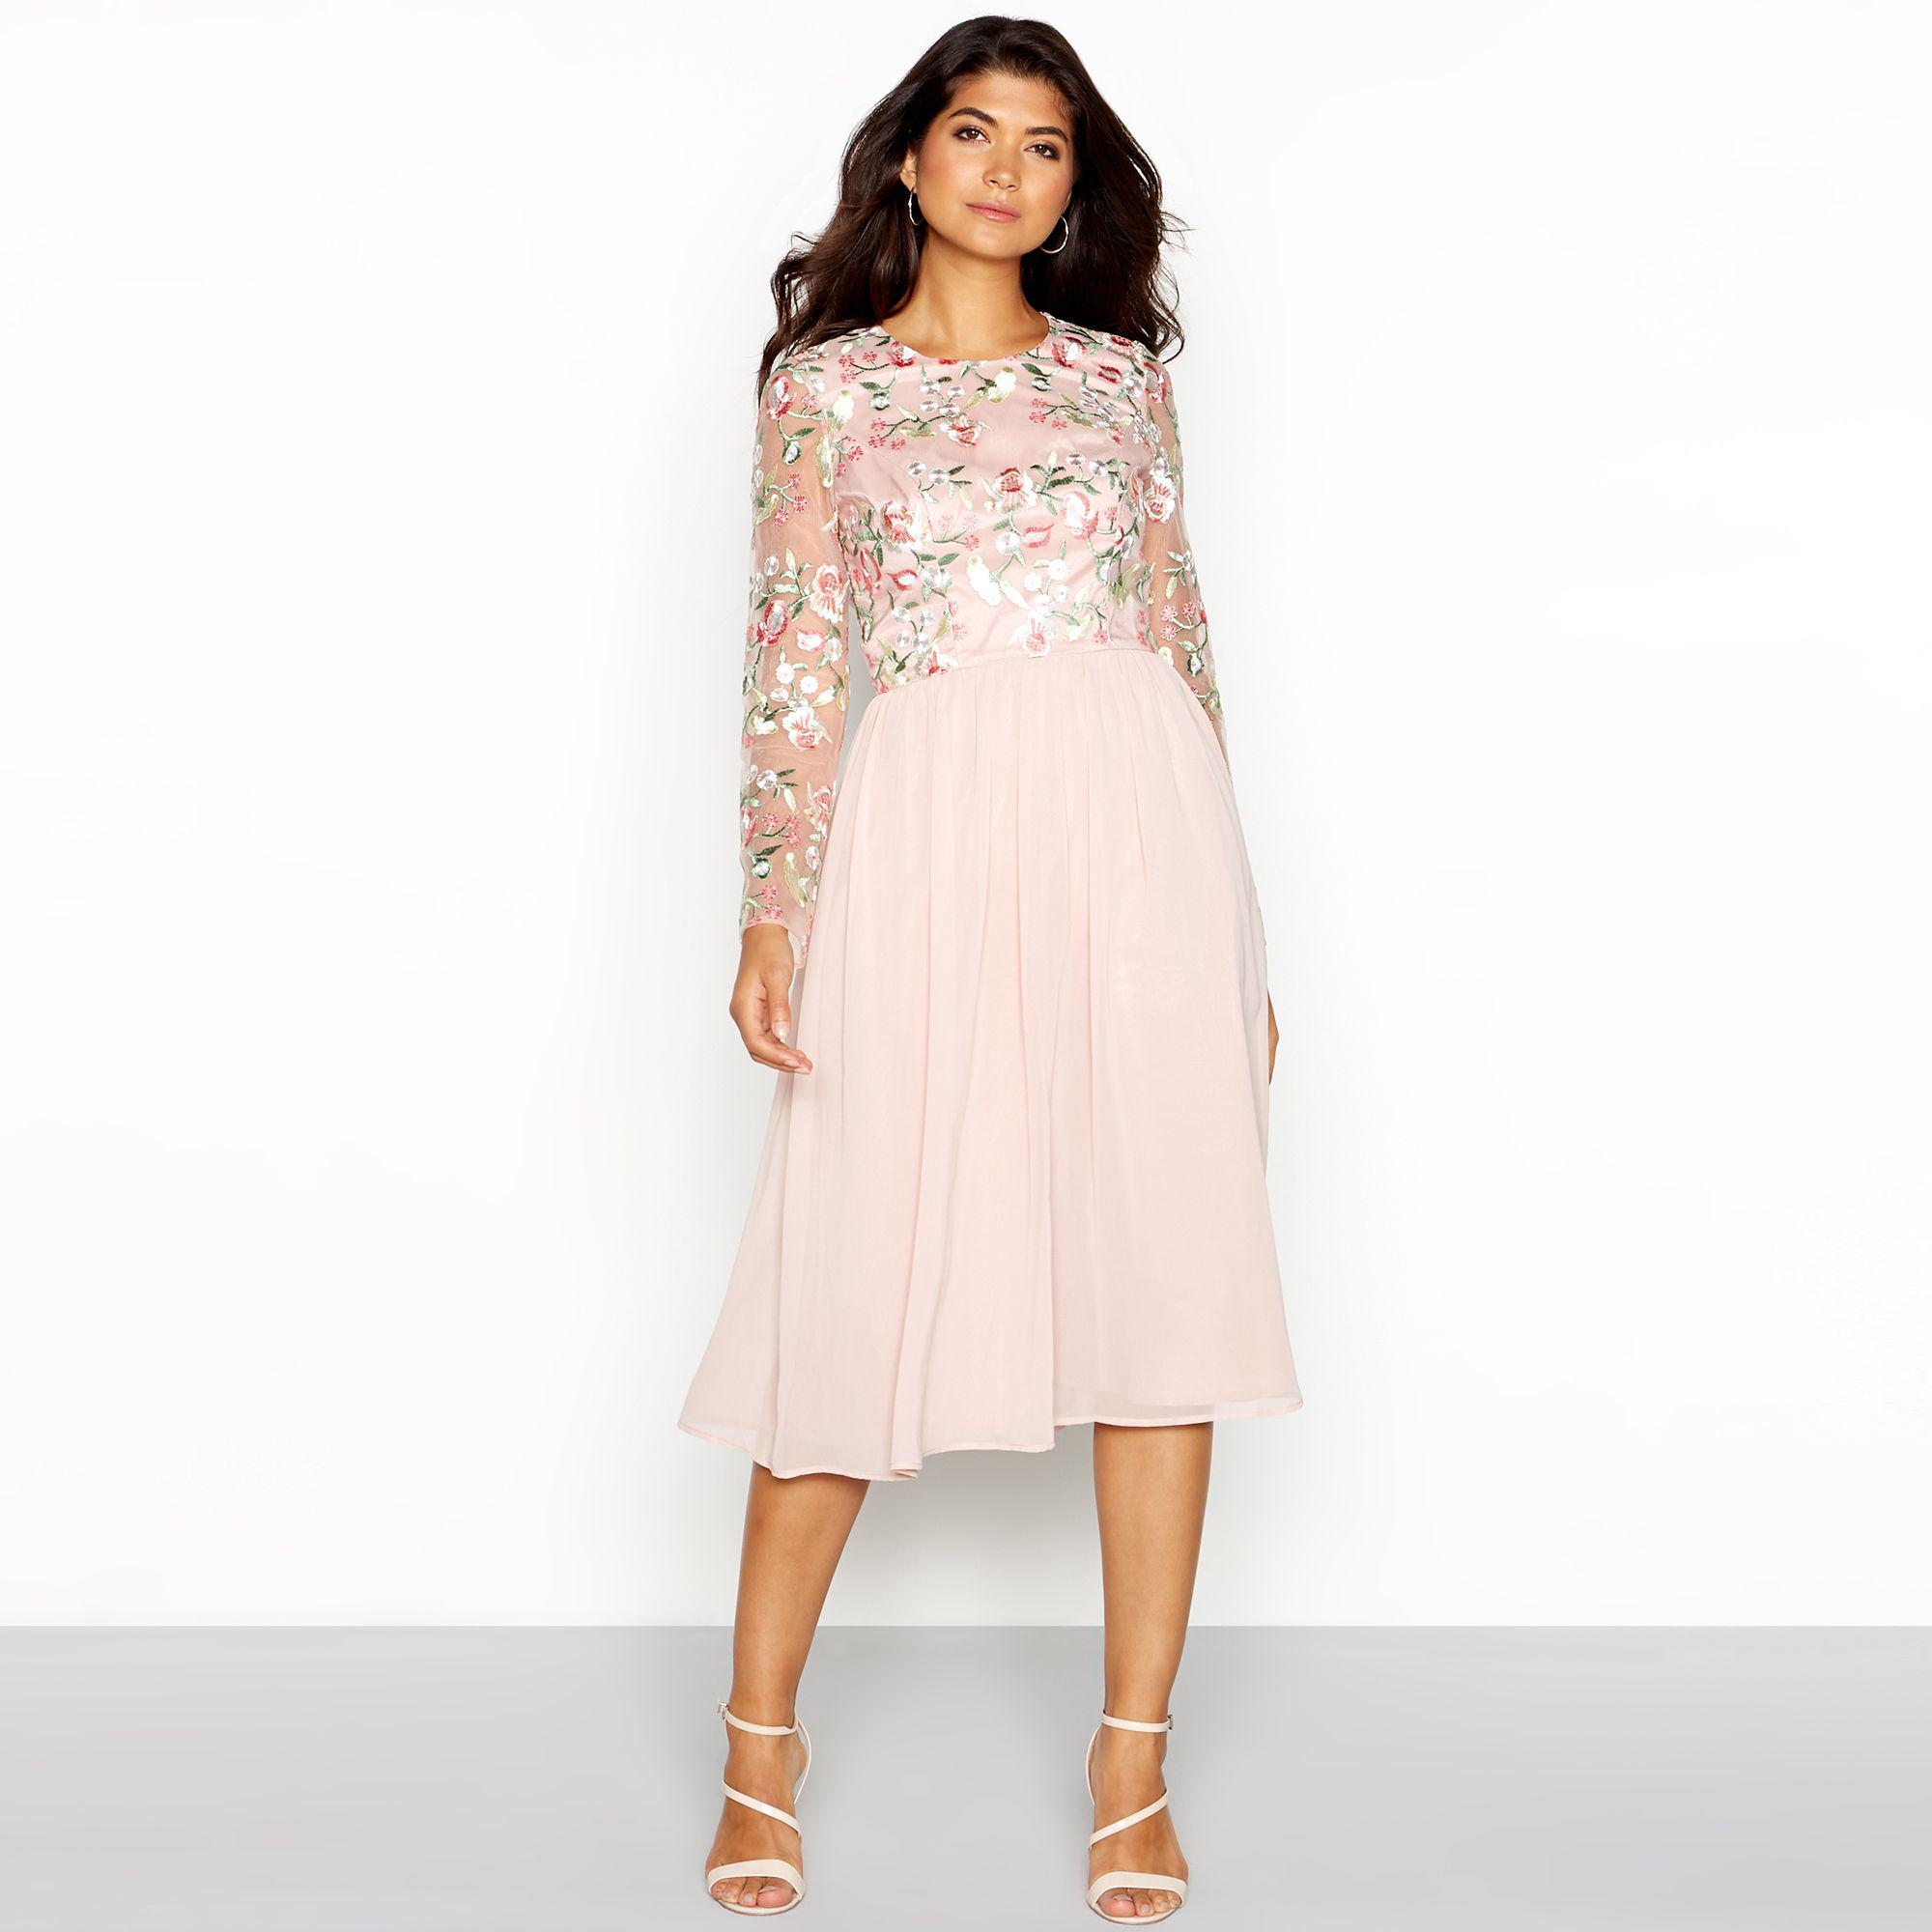 e1bbe93e981 Chi Chi London. Women s Pale Pink Floral Embroidered Chiffon  bee  Round  Neck Long Sleeve Midi Dress